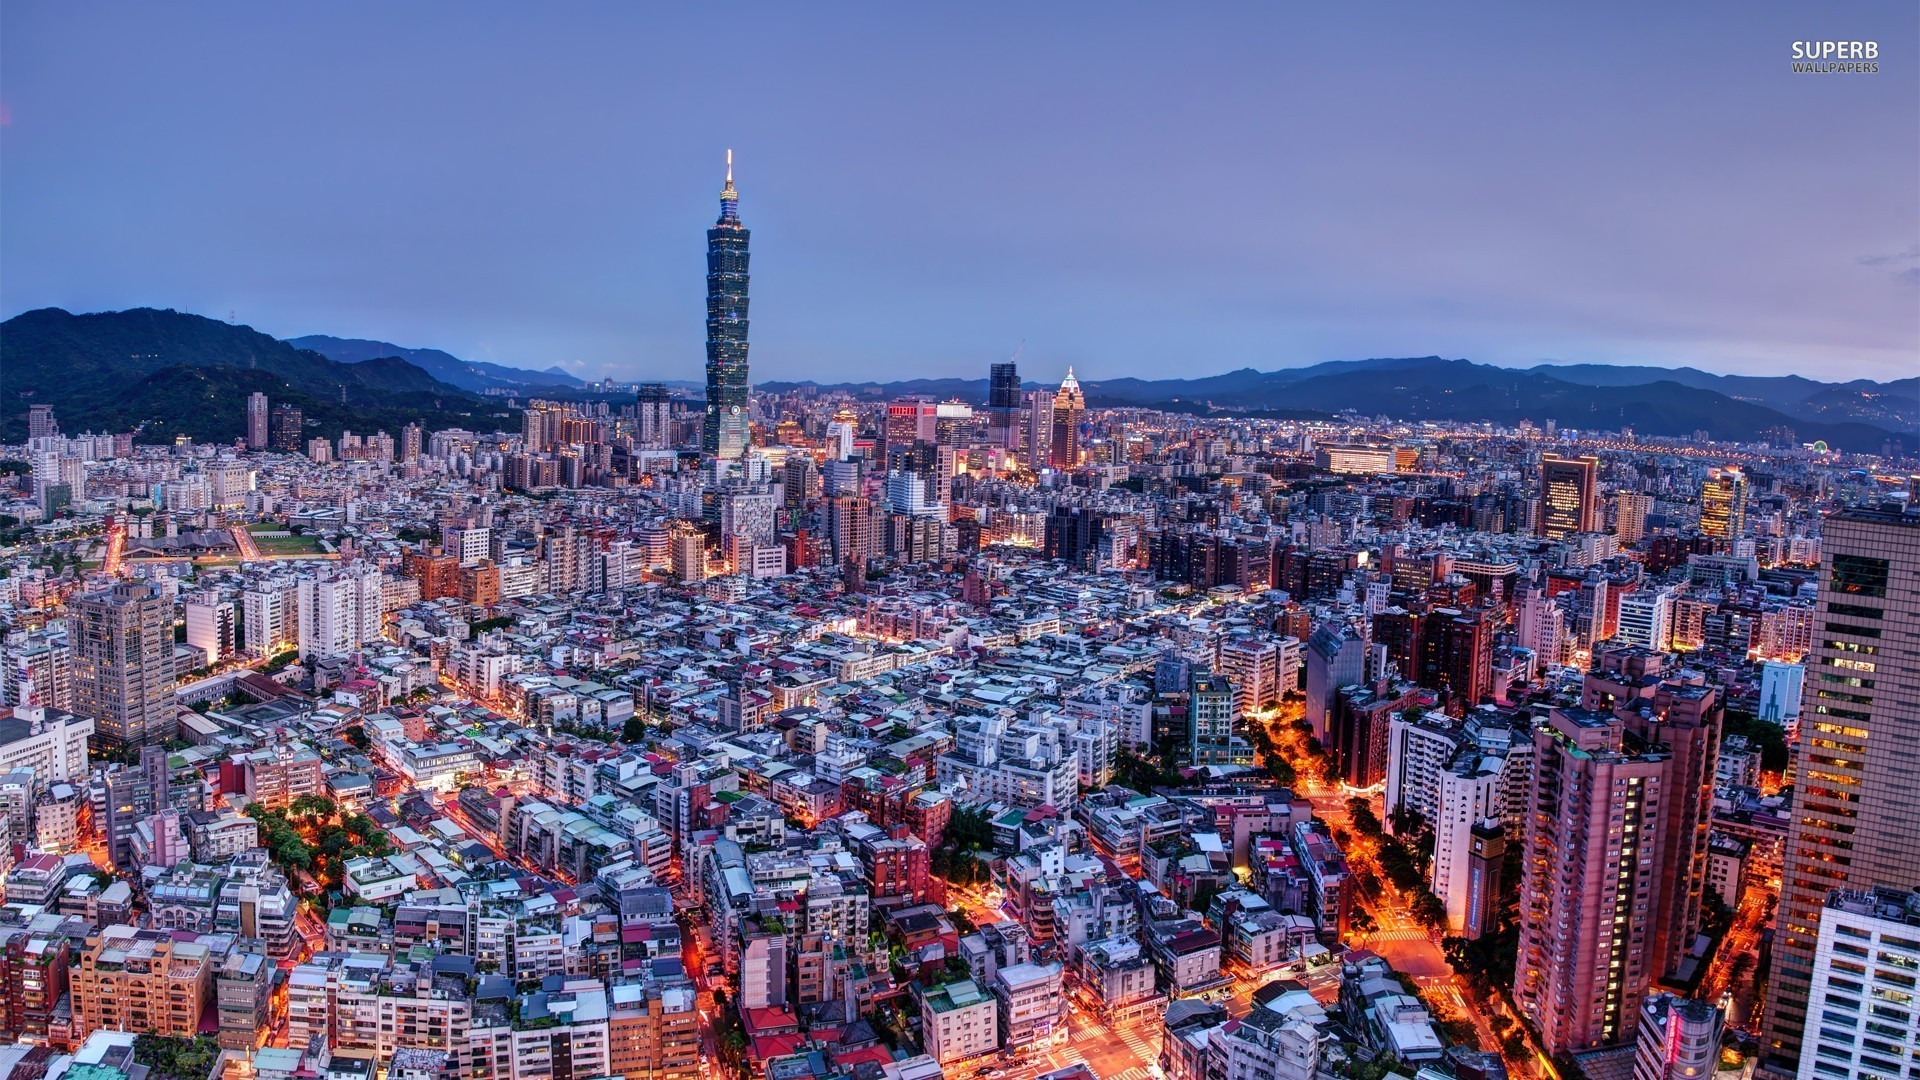 Taipei, Taiwan wallpaper 1920x1080